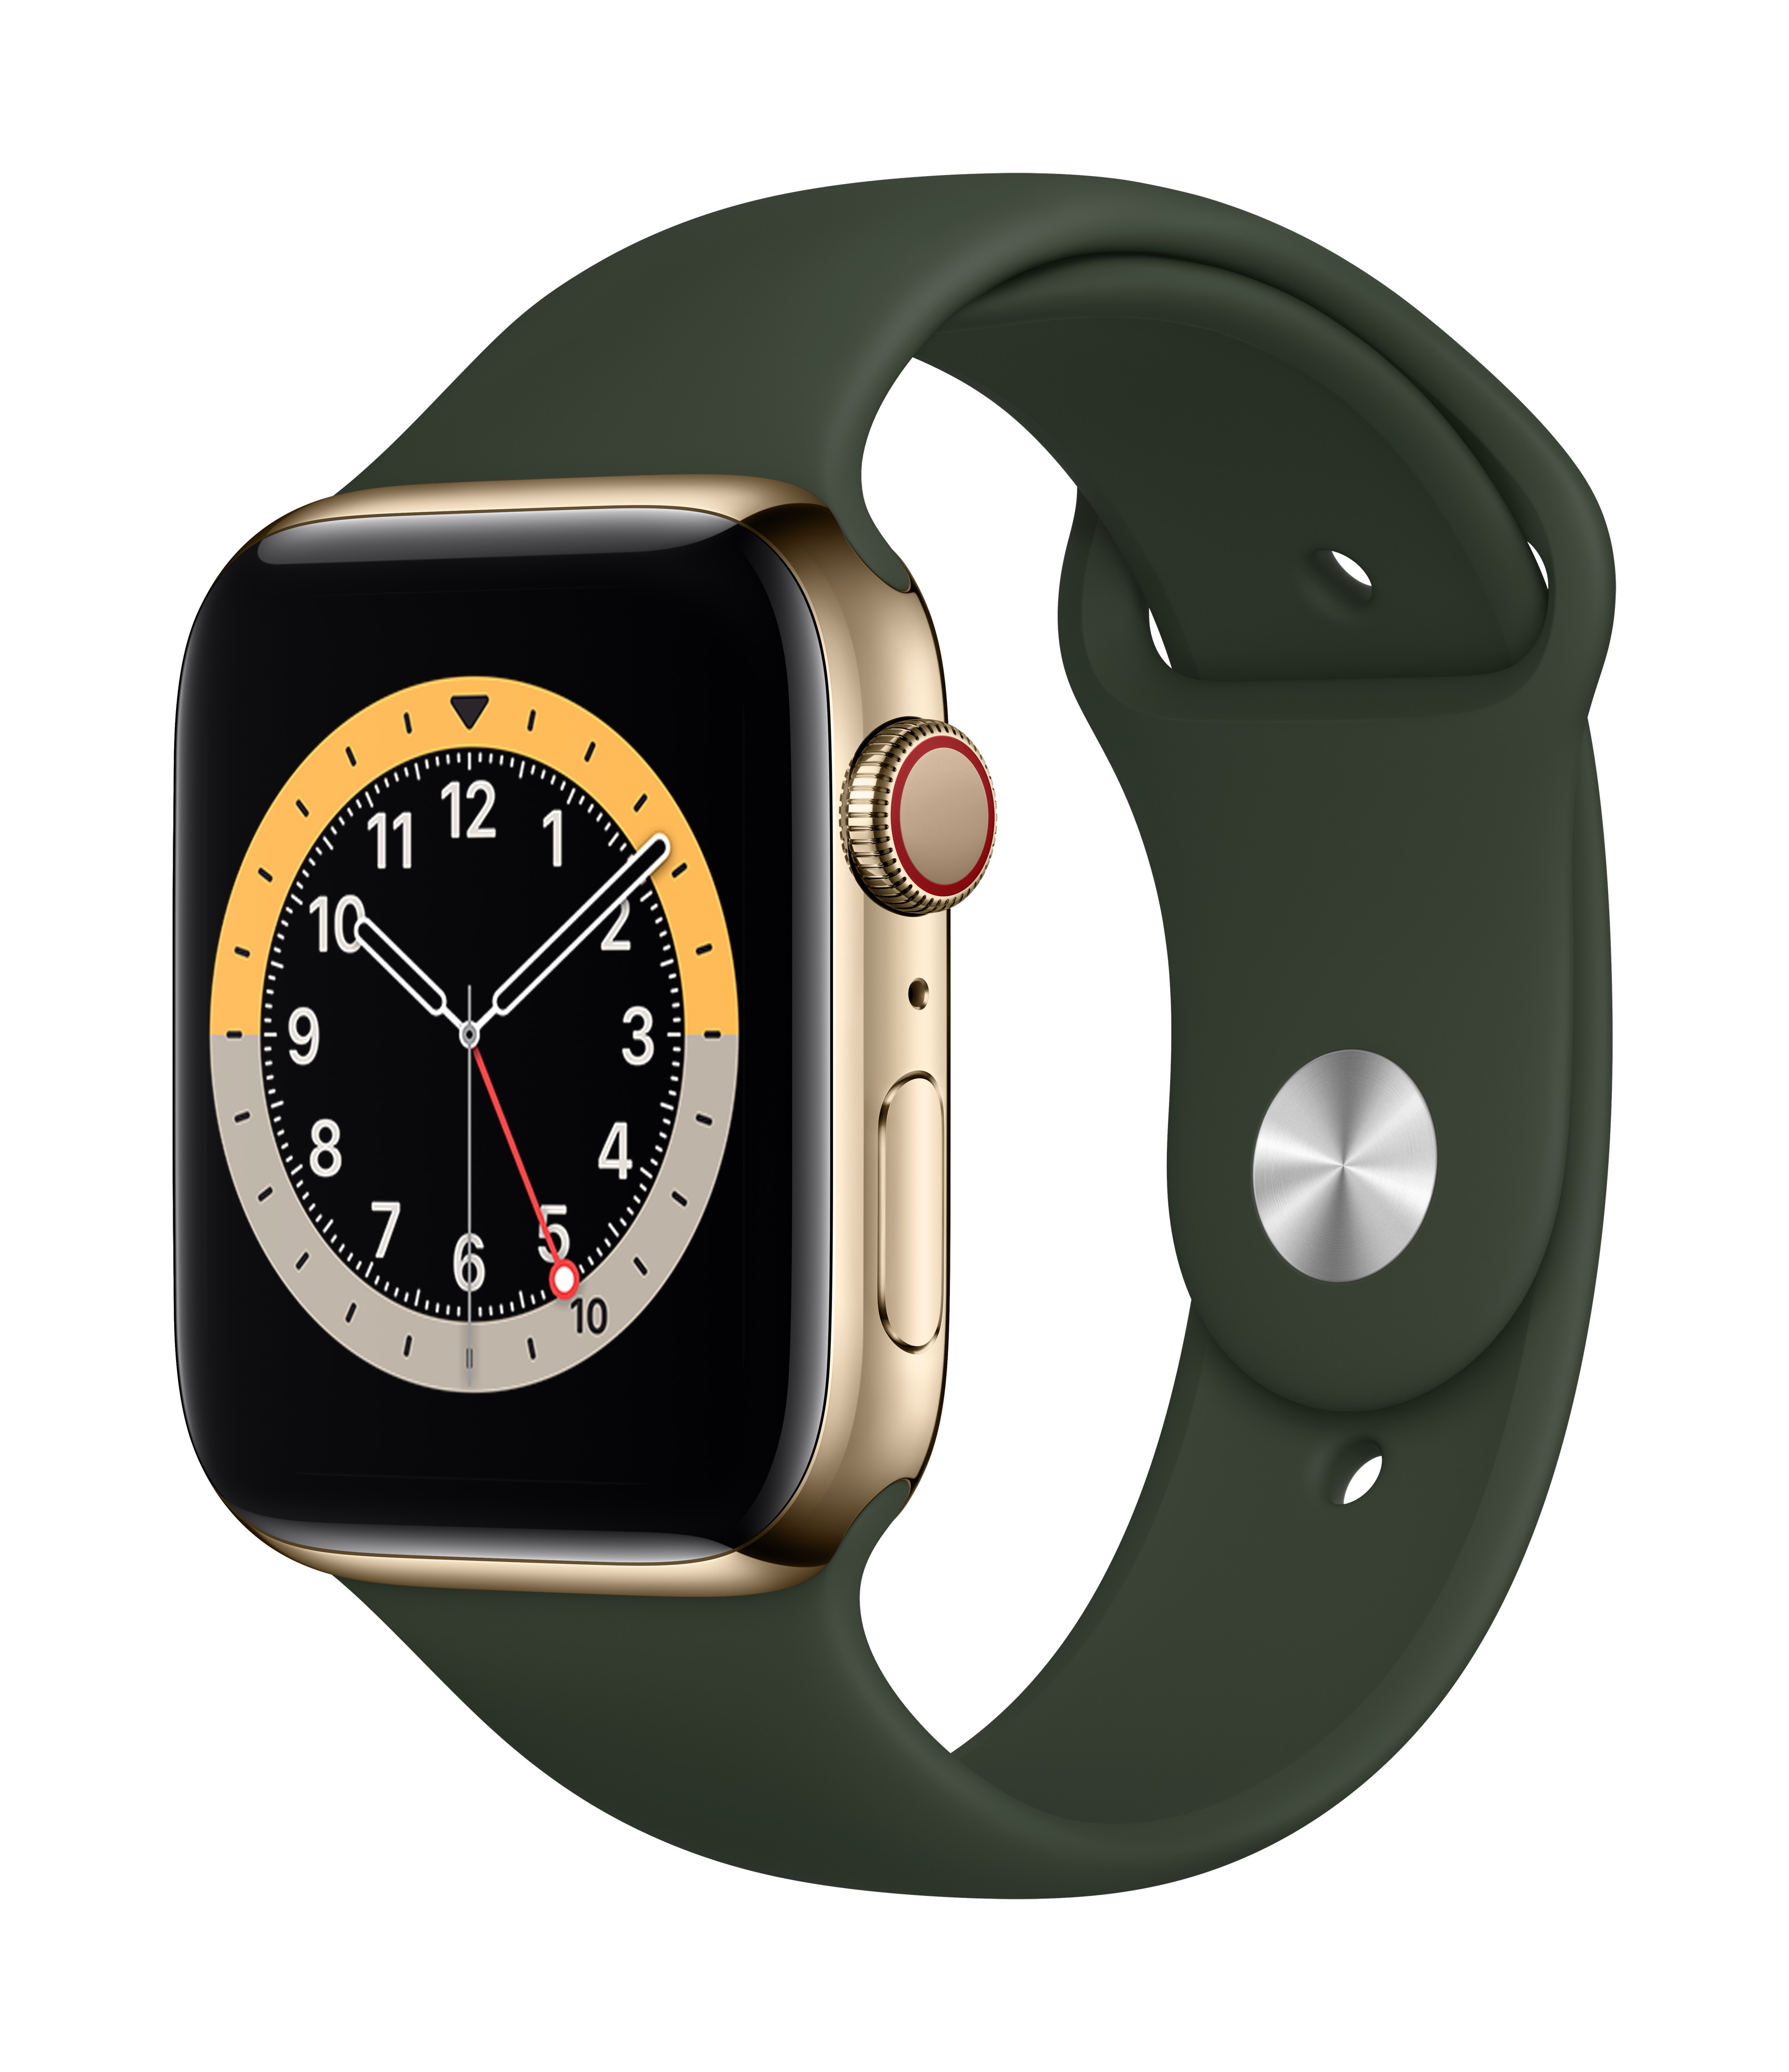 Apple Watch Series 6 GPS + Cellular 44mm Gold Stainless Steel Case w/ Cyprus Green Sport Band at Small Dog Electronics